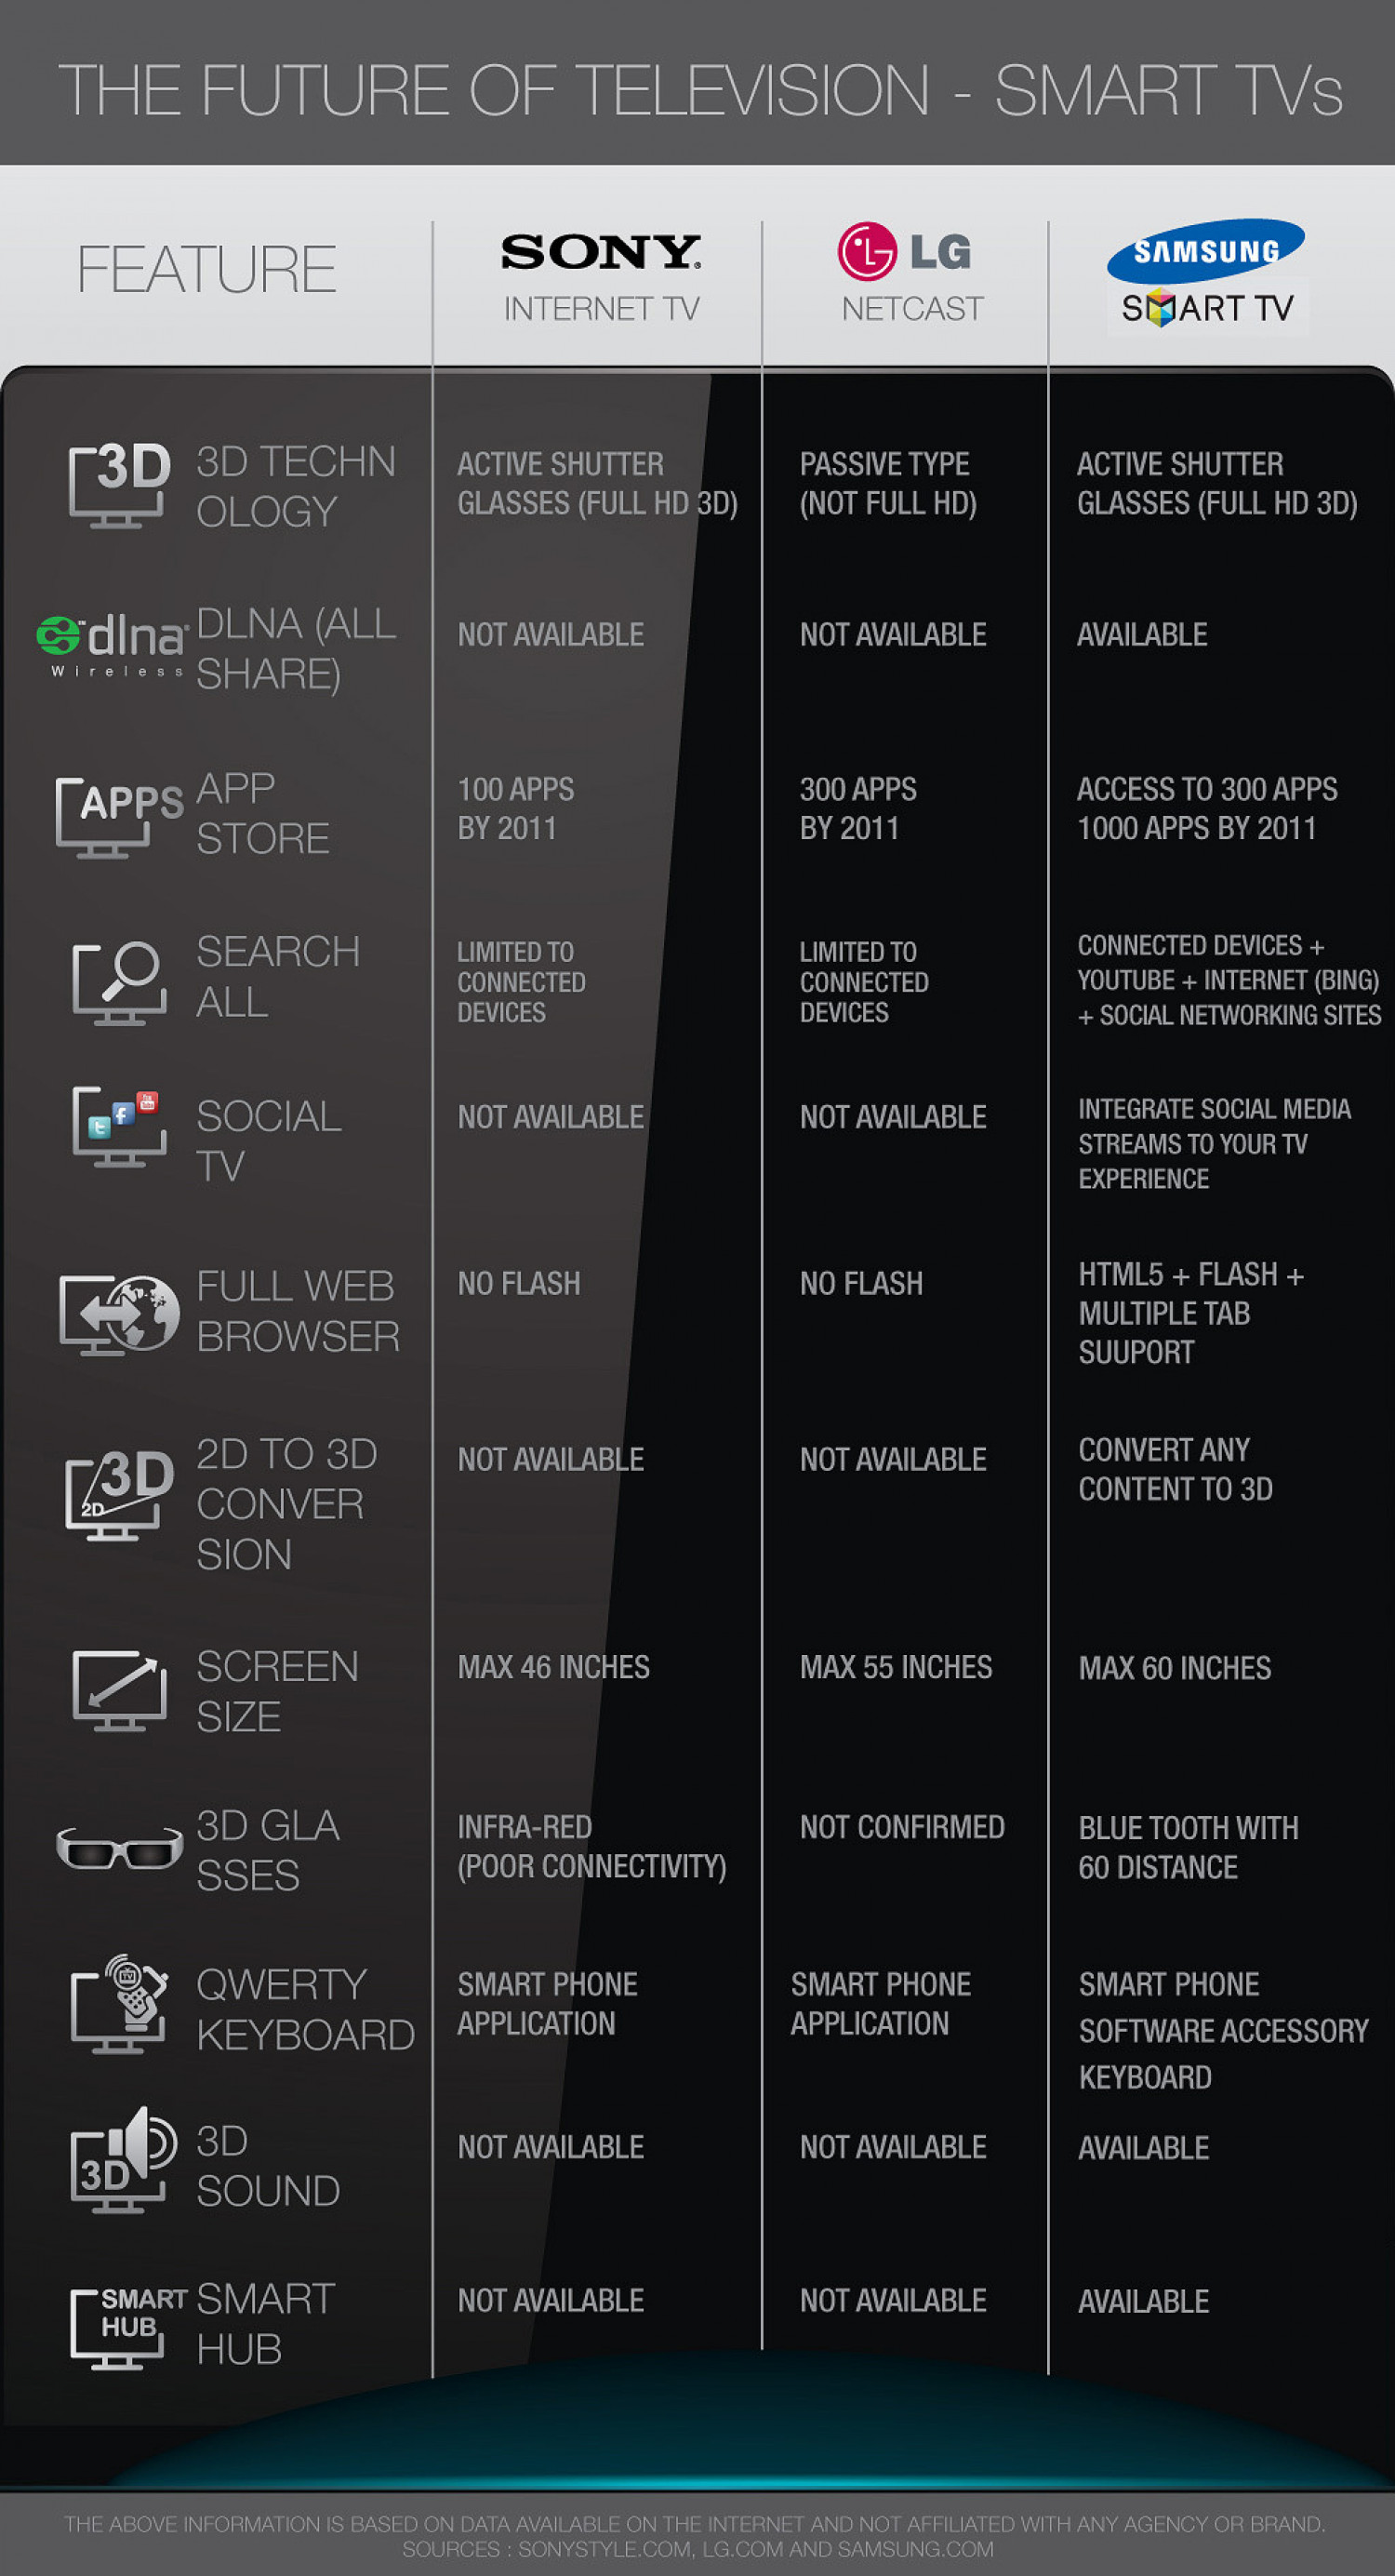 Features Comparison Of Samsung Smart TV, Sony Internet TV and LG Netcast Infographic